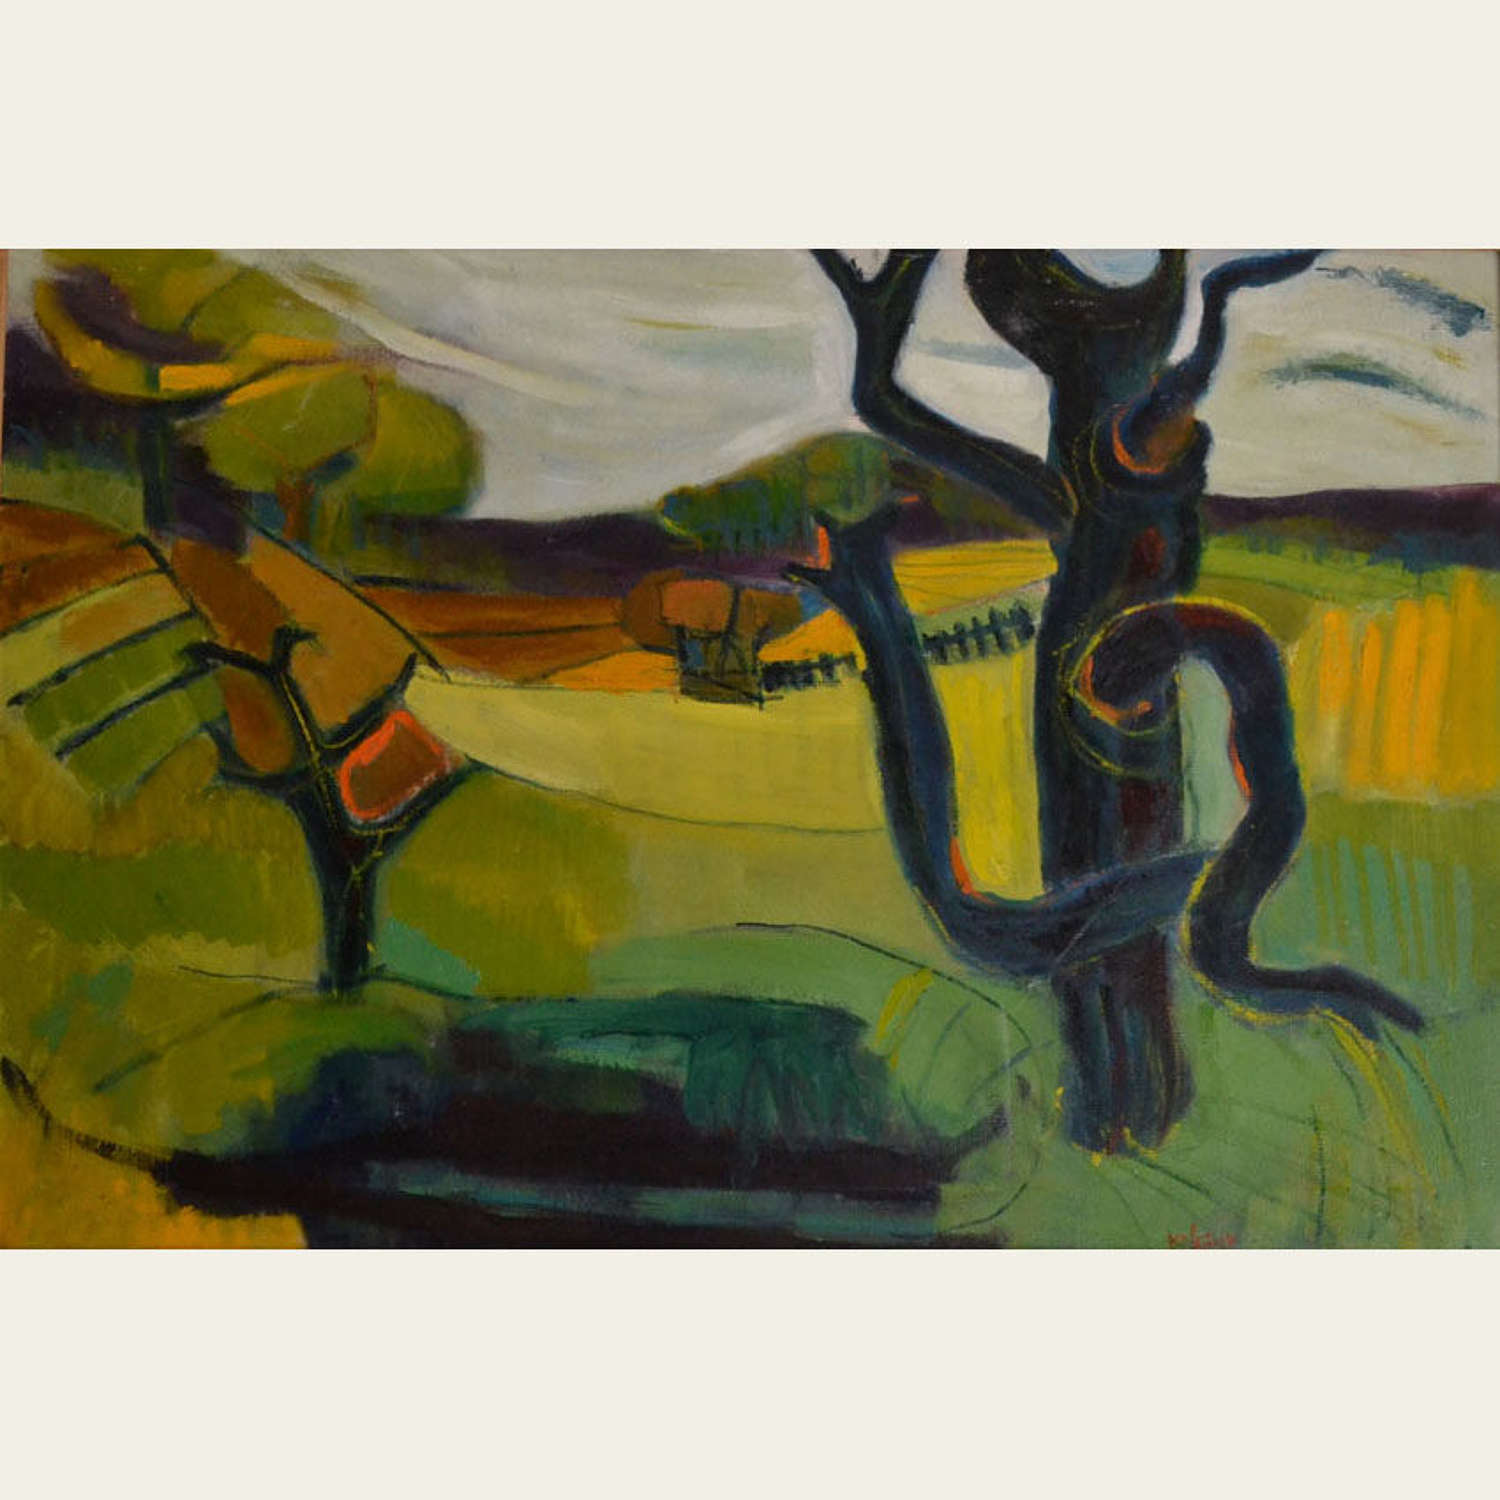 Oil Painting of British Landscape in Vibrant Green by Barbara Knight